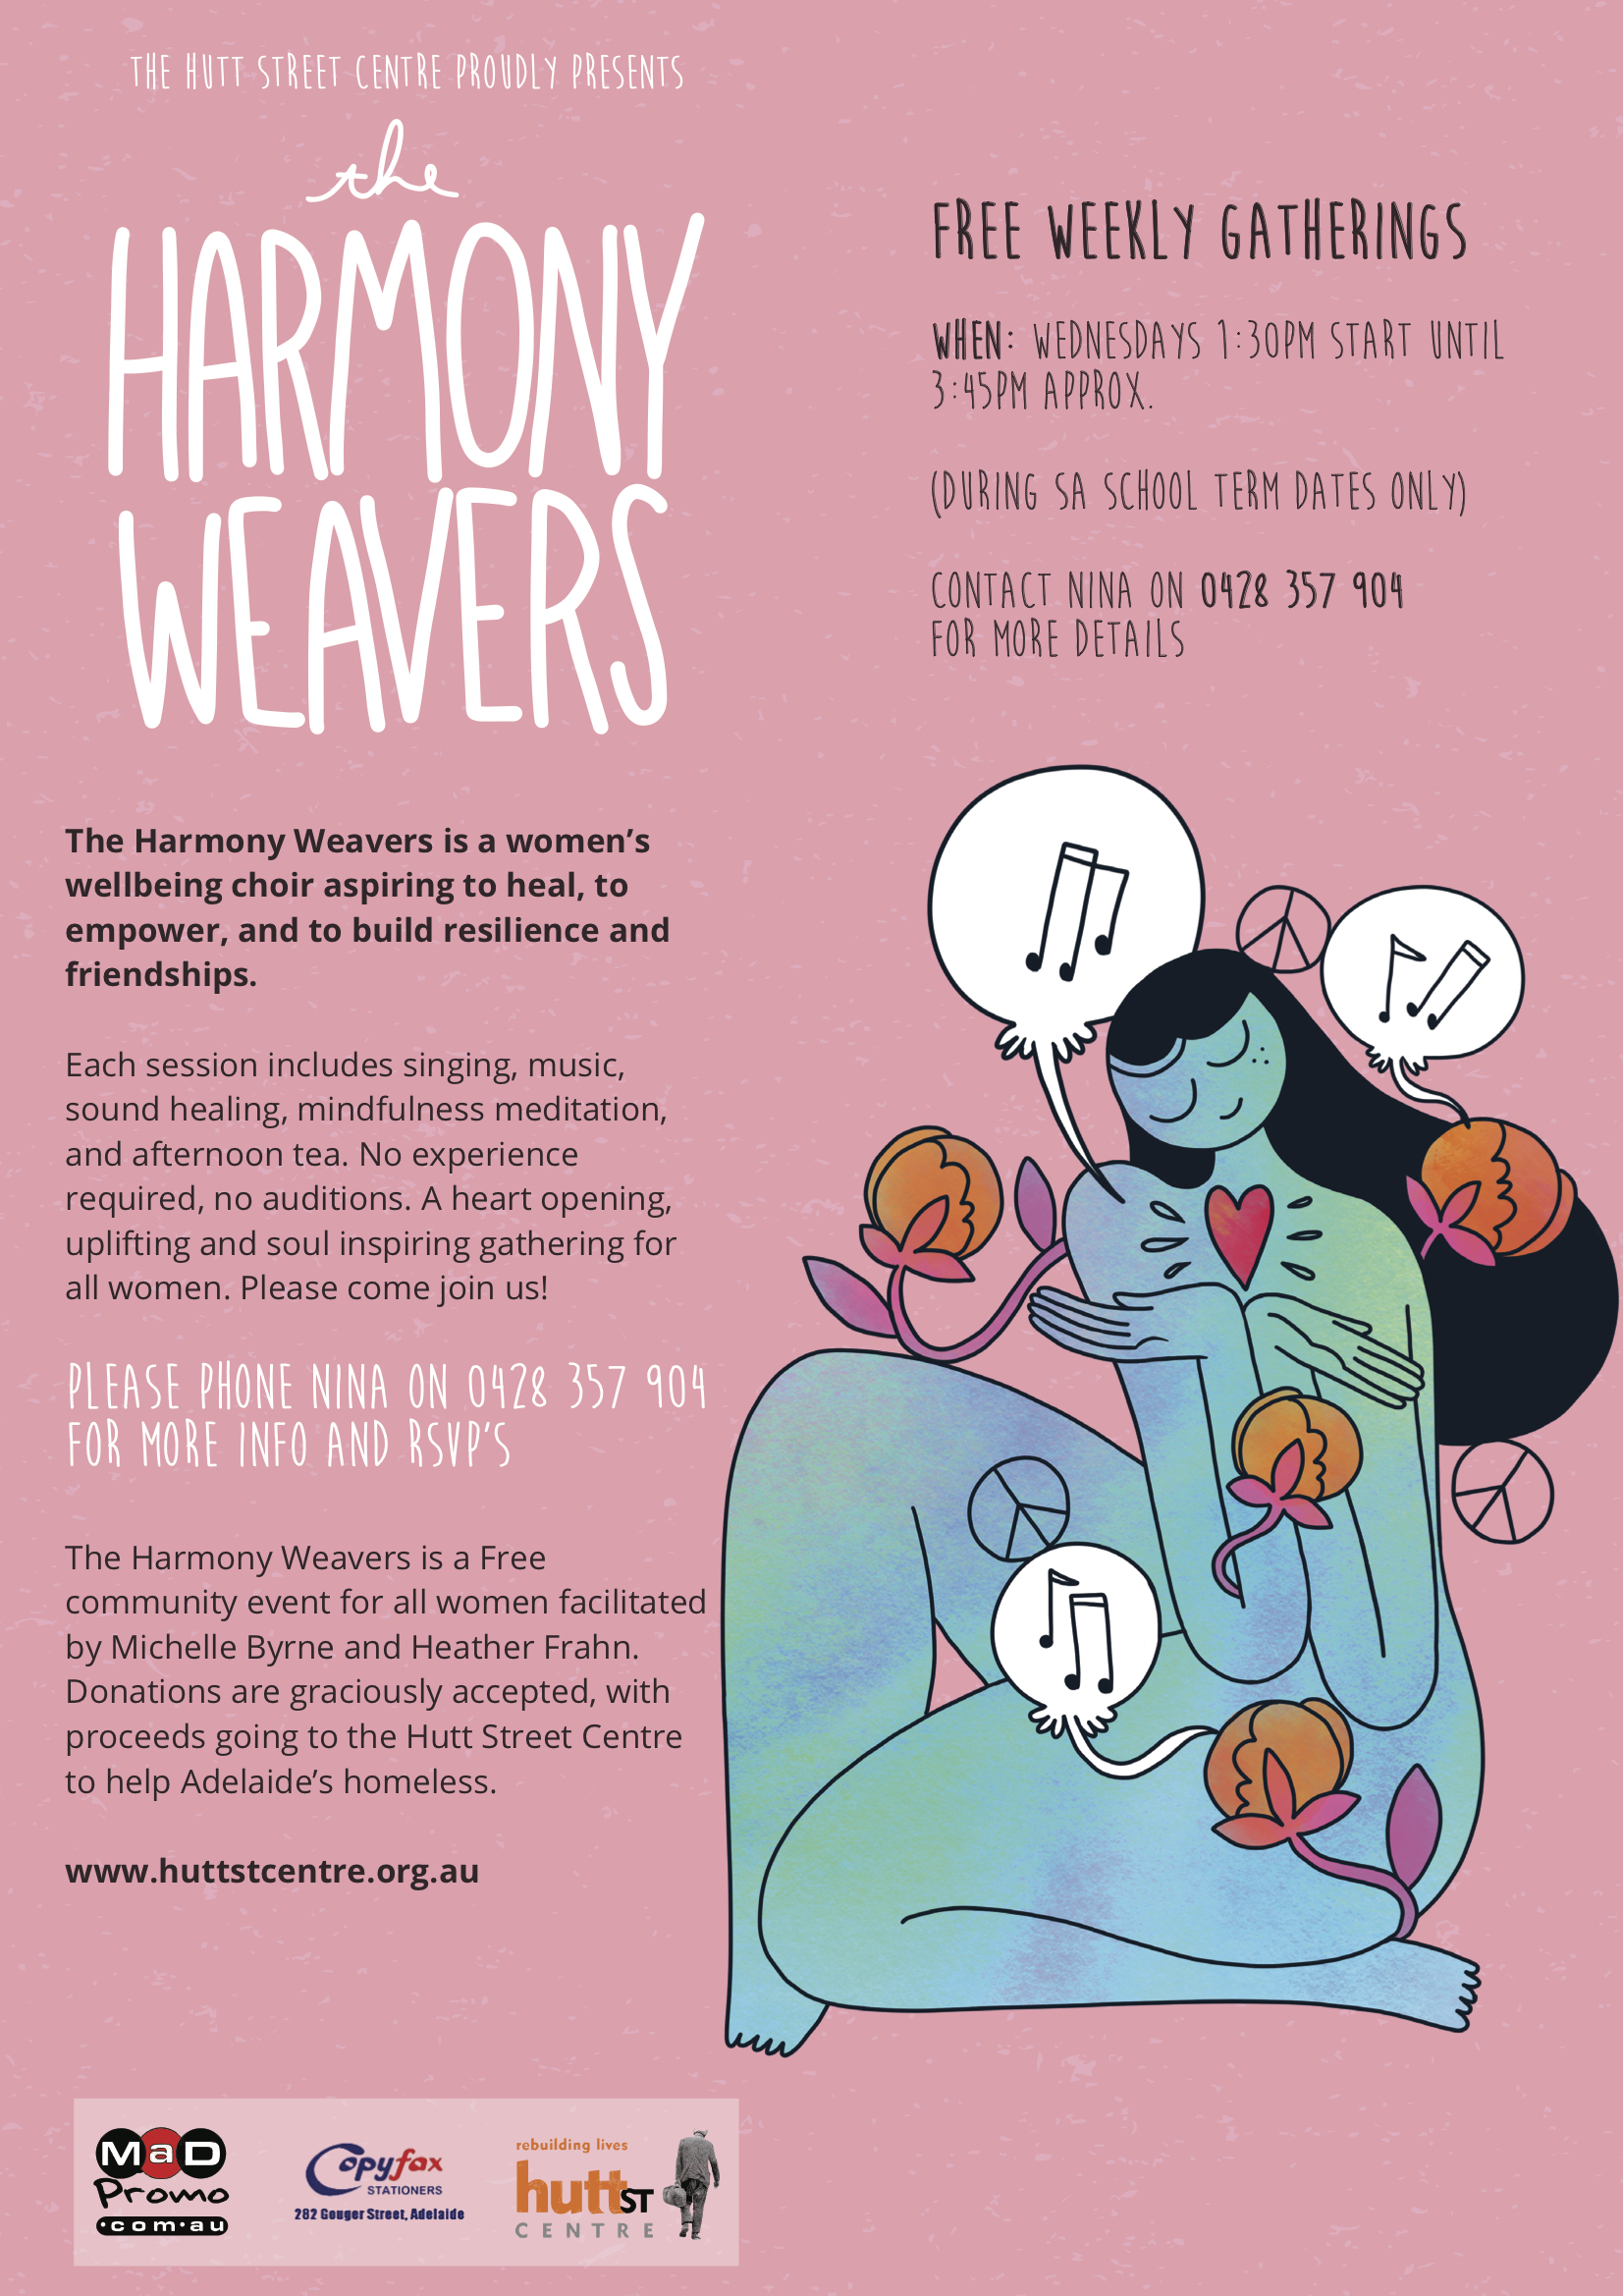 Harmony Weavers Women's Wellbeing Choir